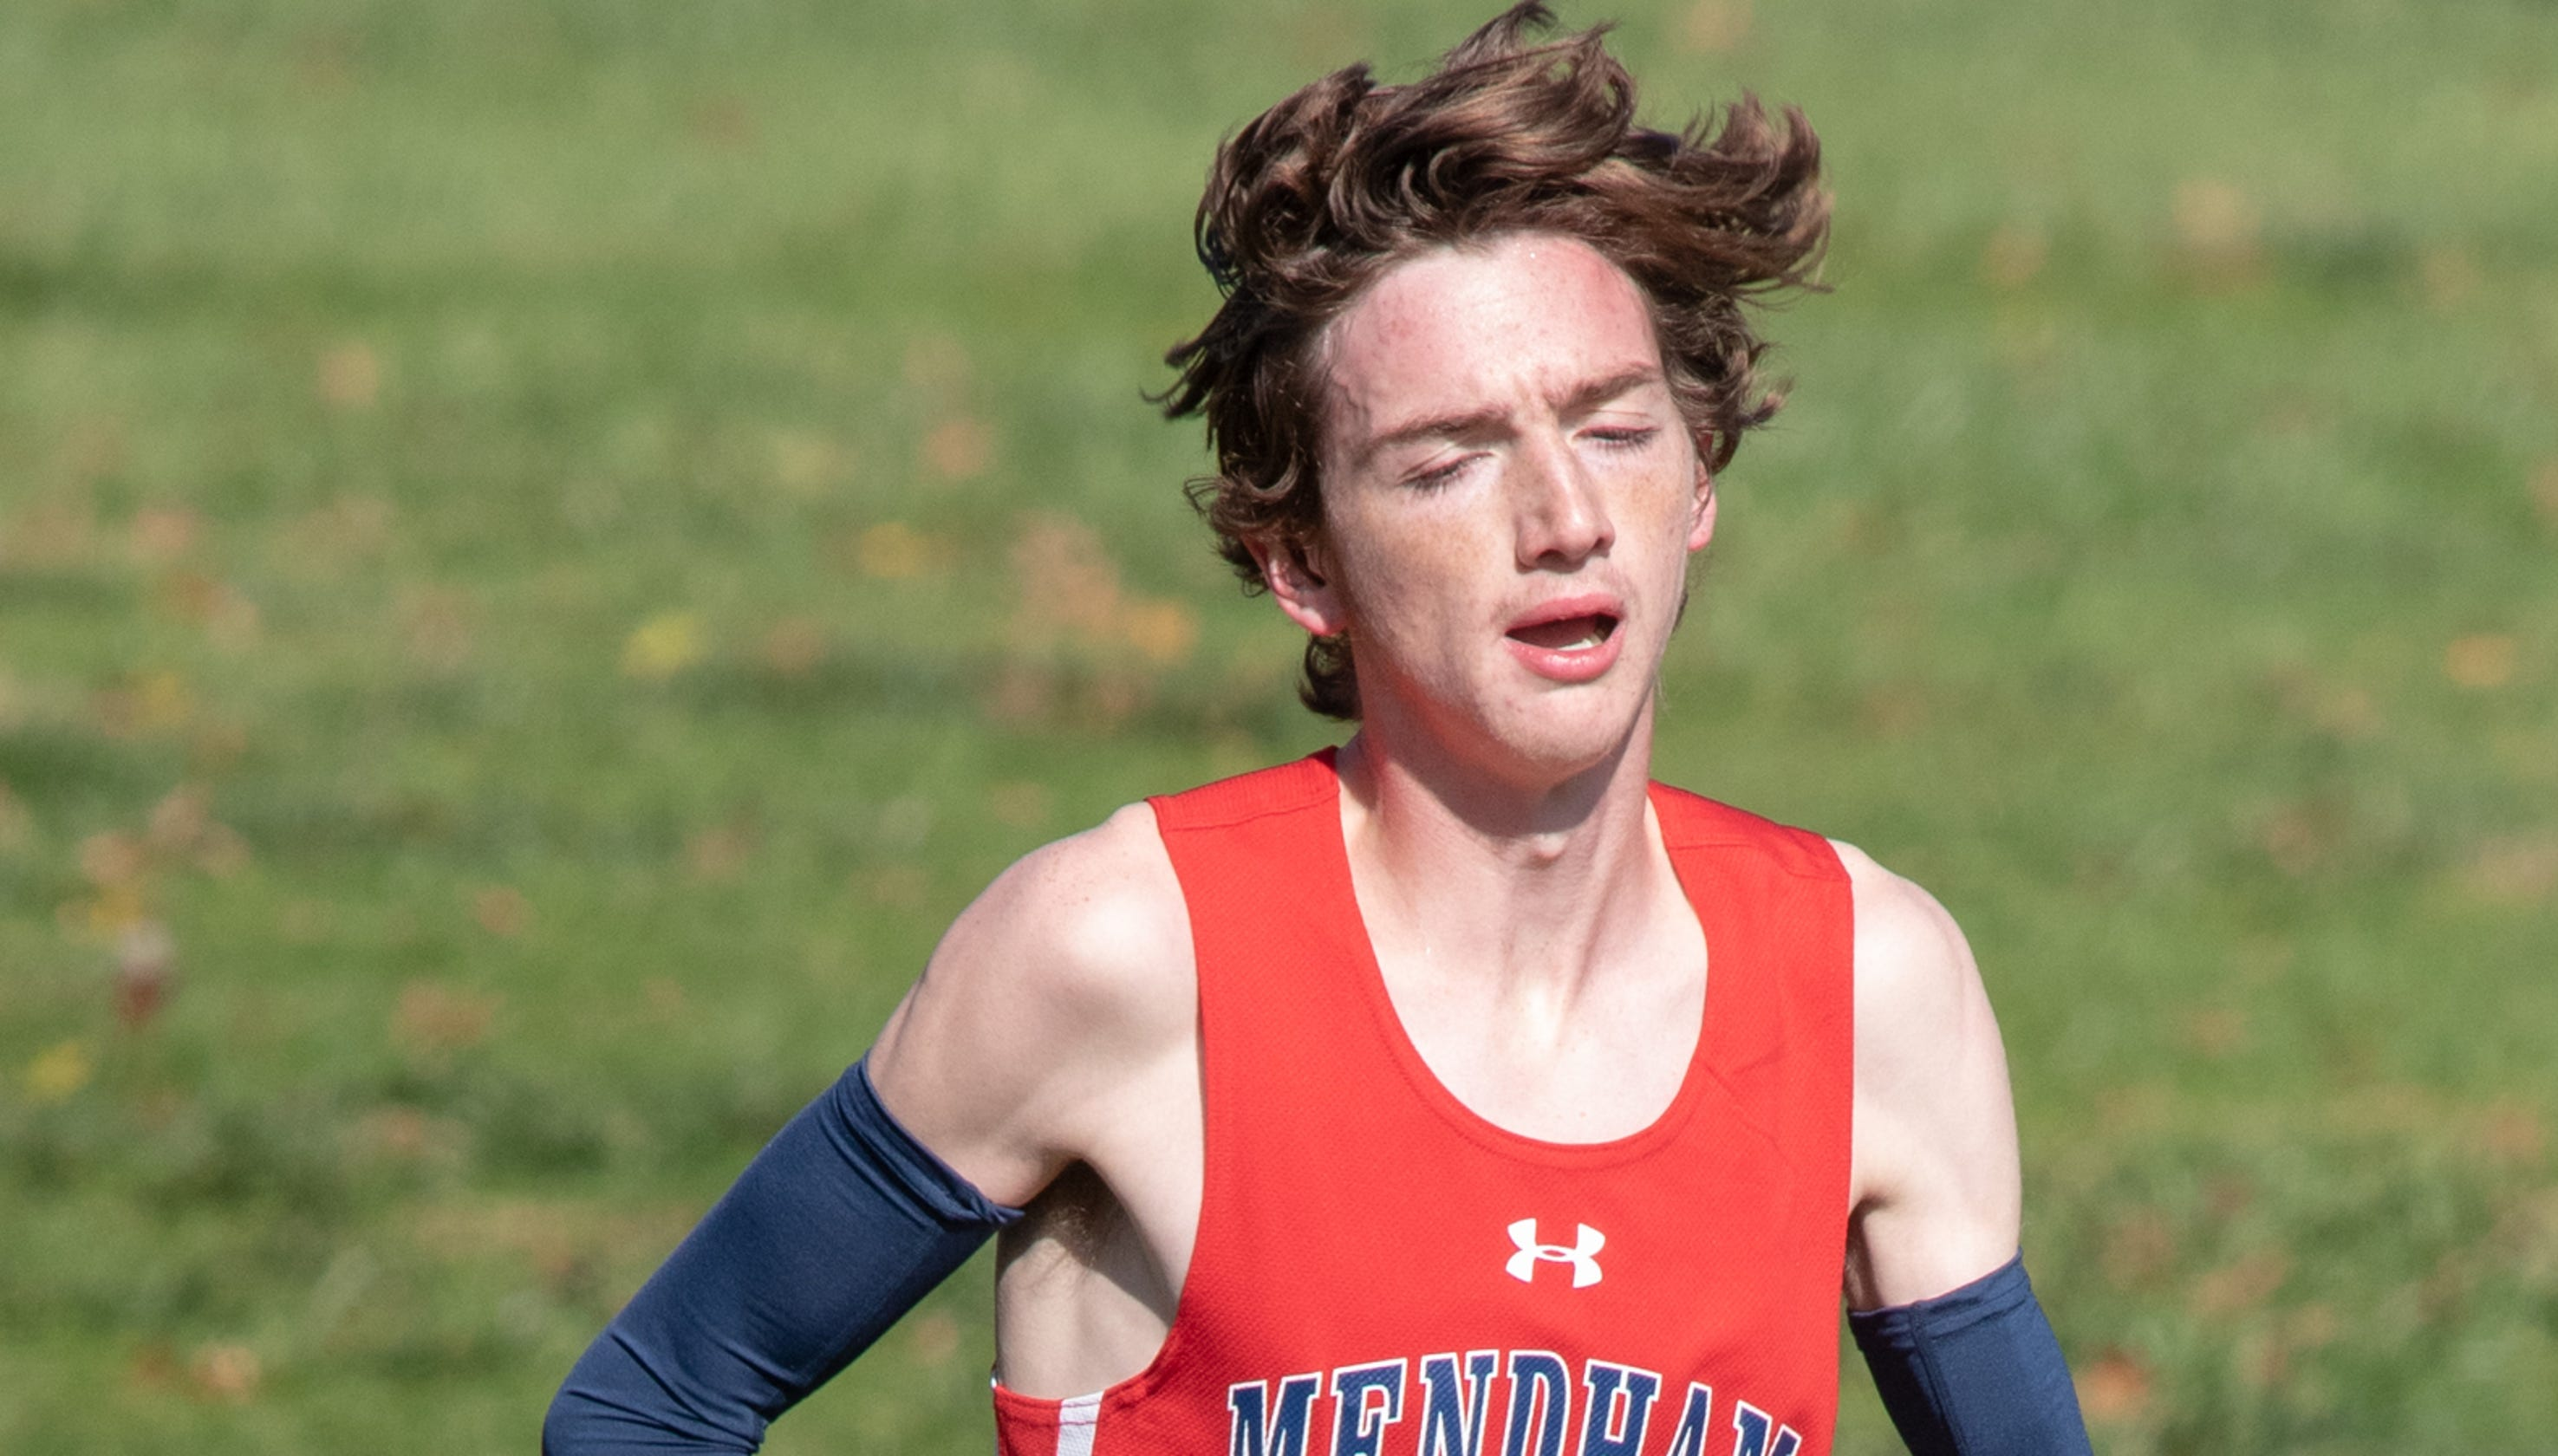 Northwest Jersey Athletic Conference boys cross country